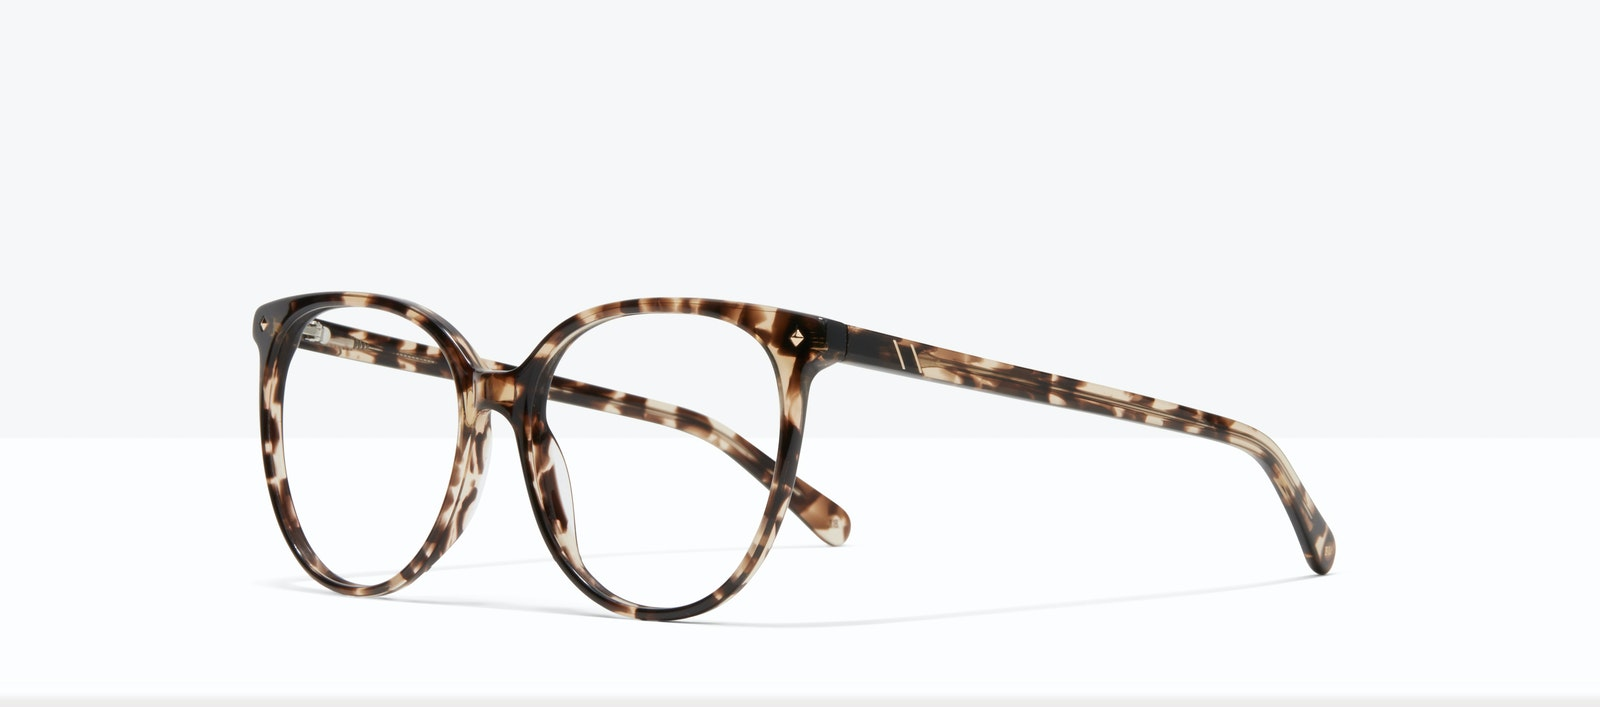 Affordable Fashion Glasses Round Eyeglasses Women Area S Leopard Tilt